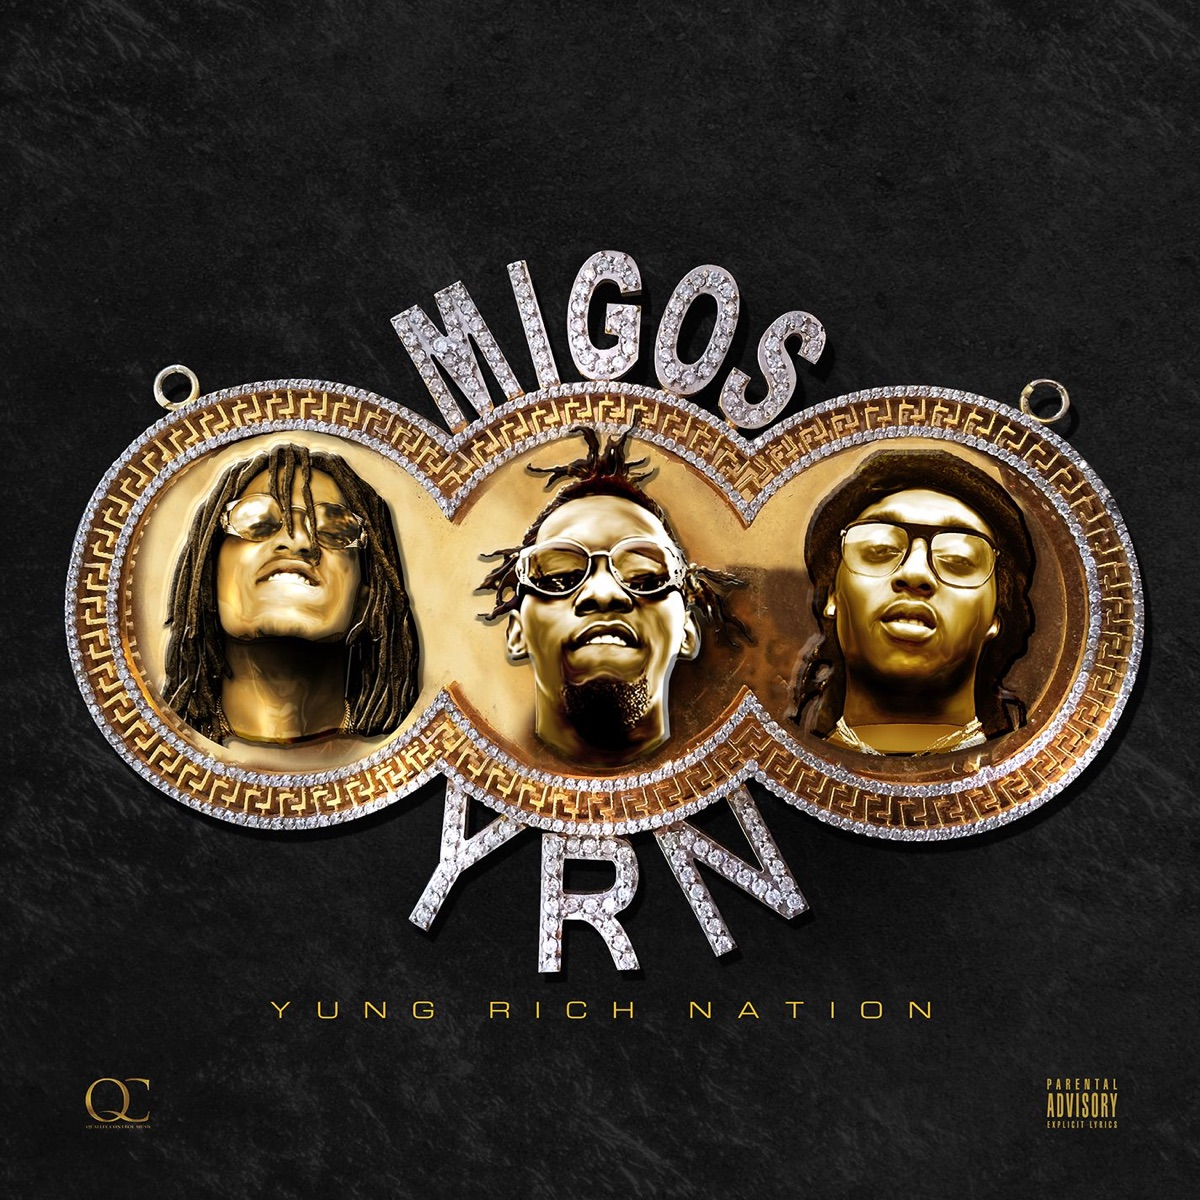 Yung Rich Nation Migos CD cover